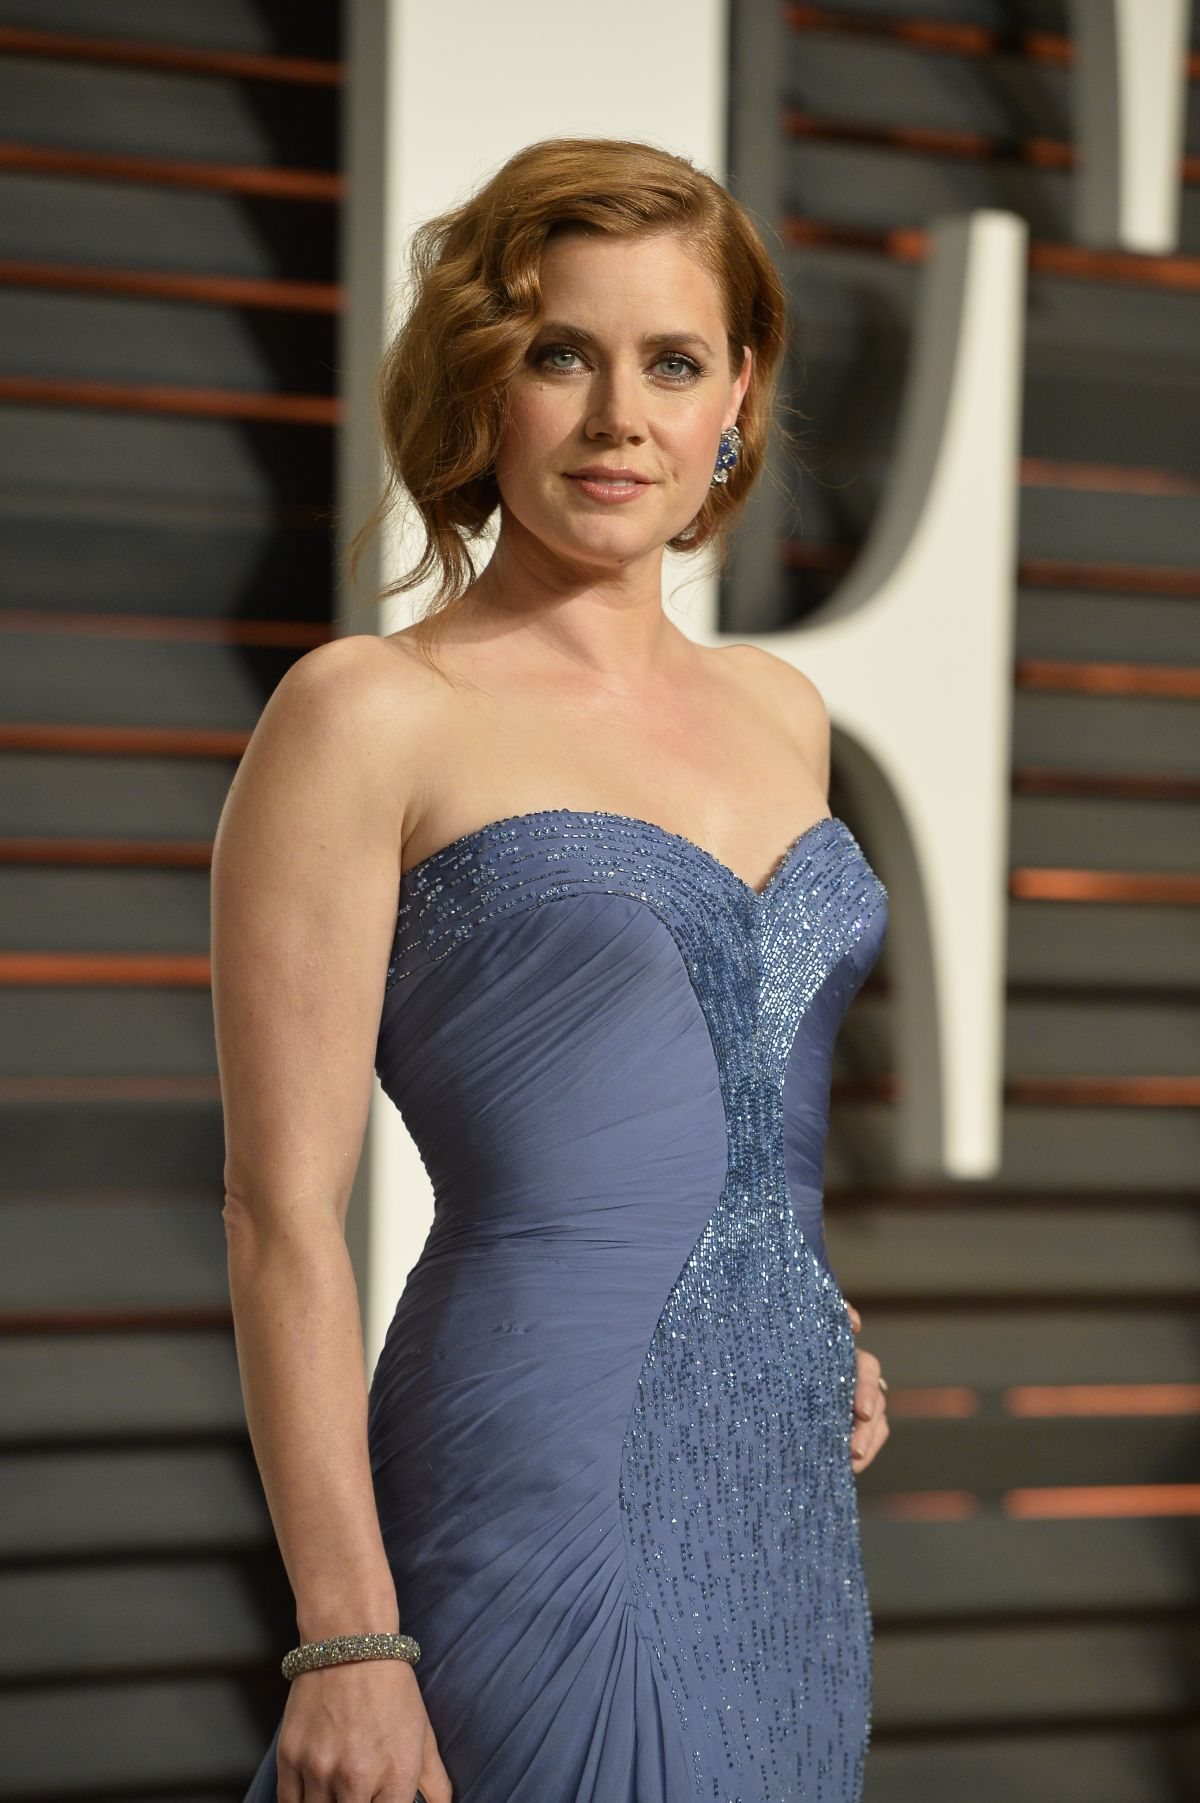 AMY ADAMS at Vanity Fair Oscar Party in Hollywood - HawtCelebs ... Amy Adams